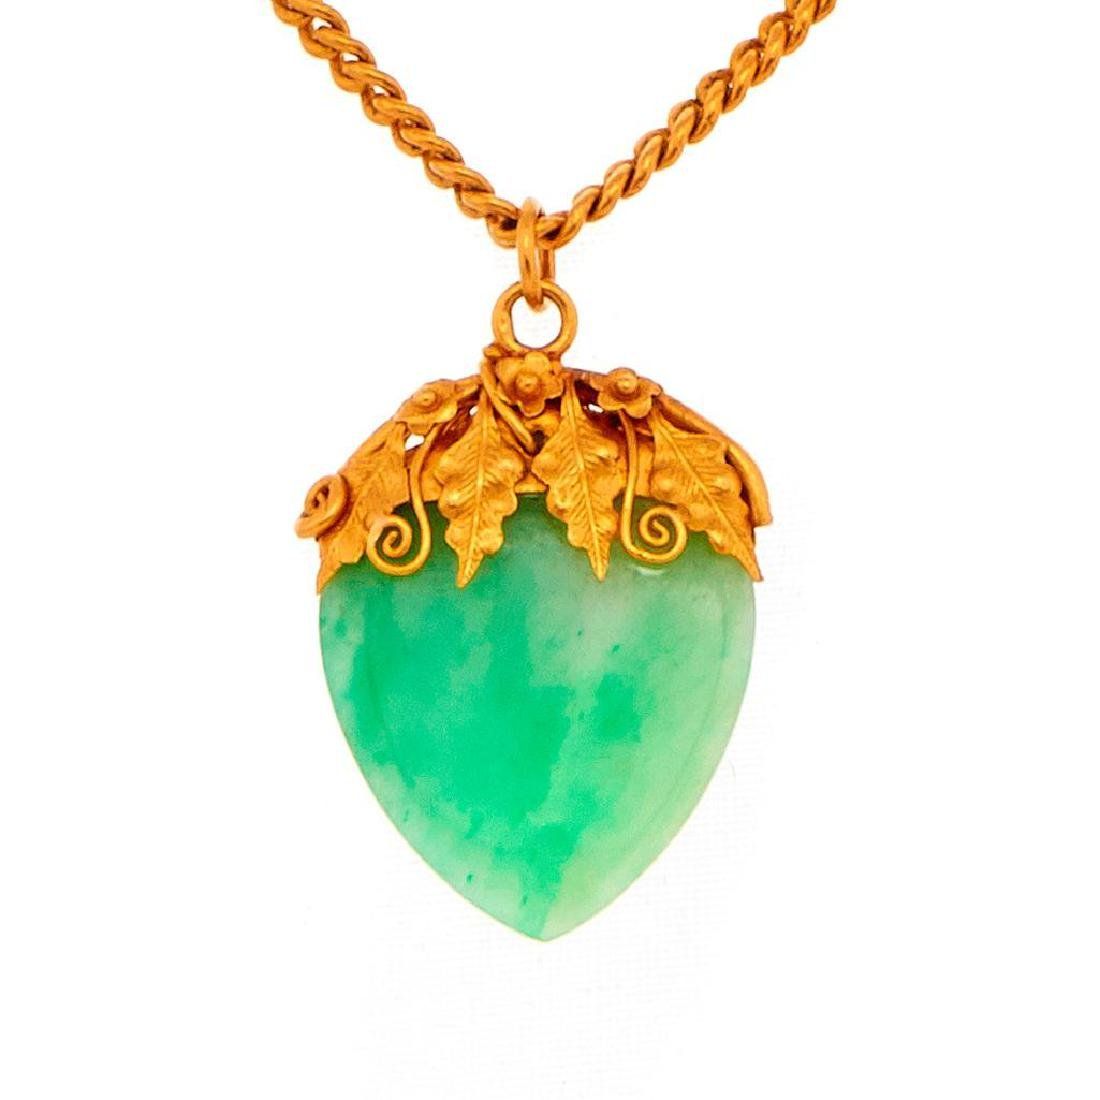 Jade and high karat gold pendant and chain